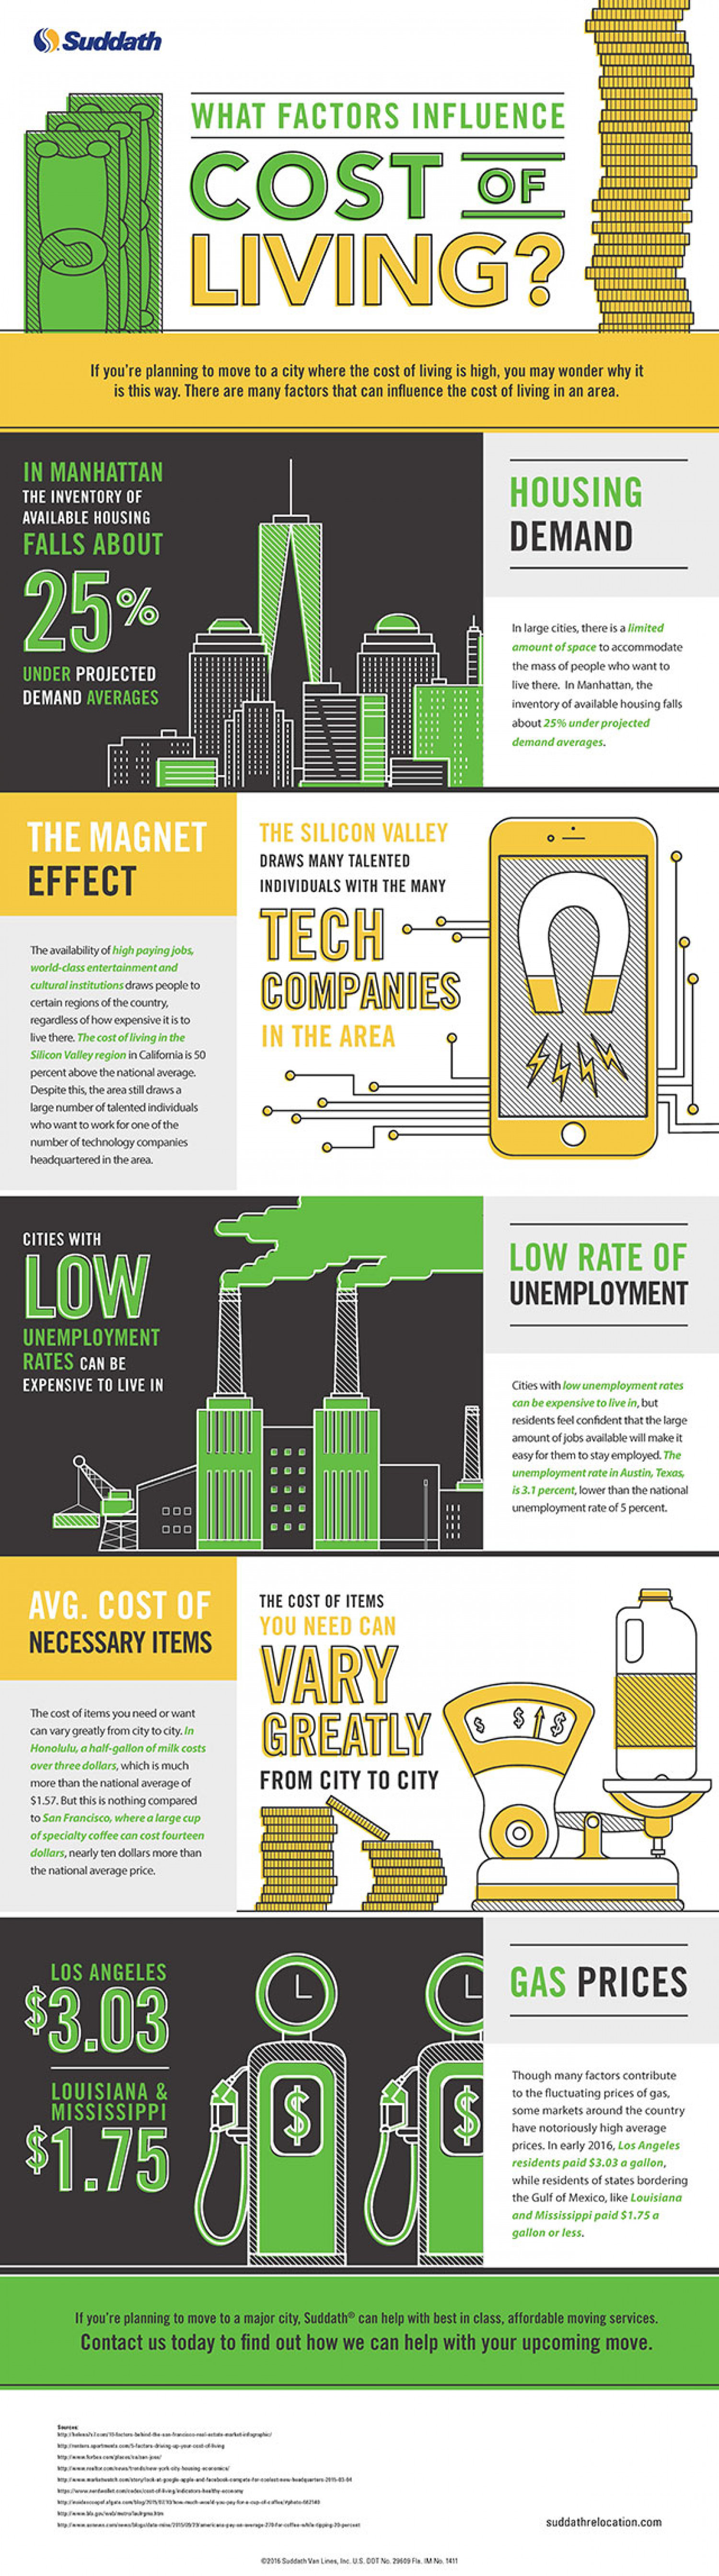 What factors influence cost of living? Infographic